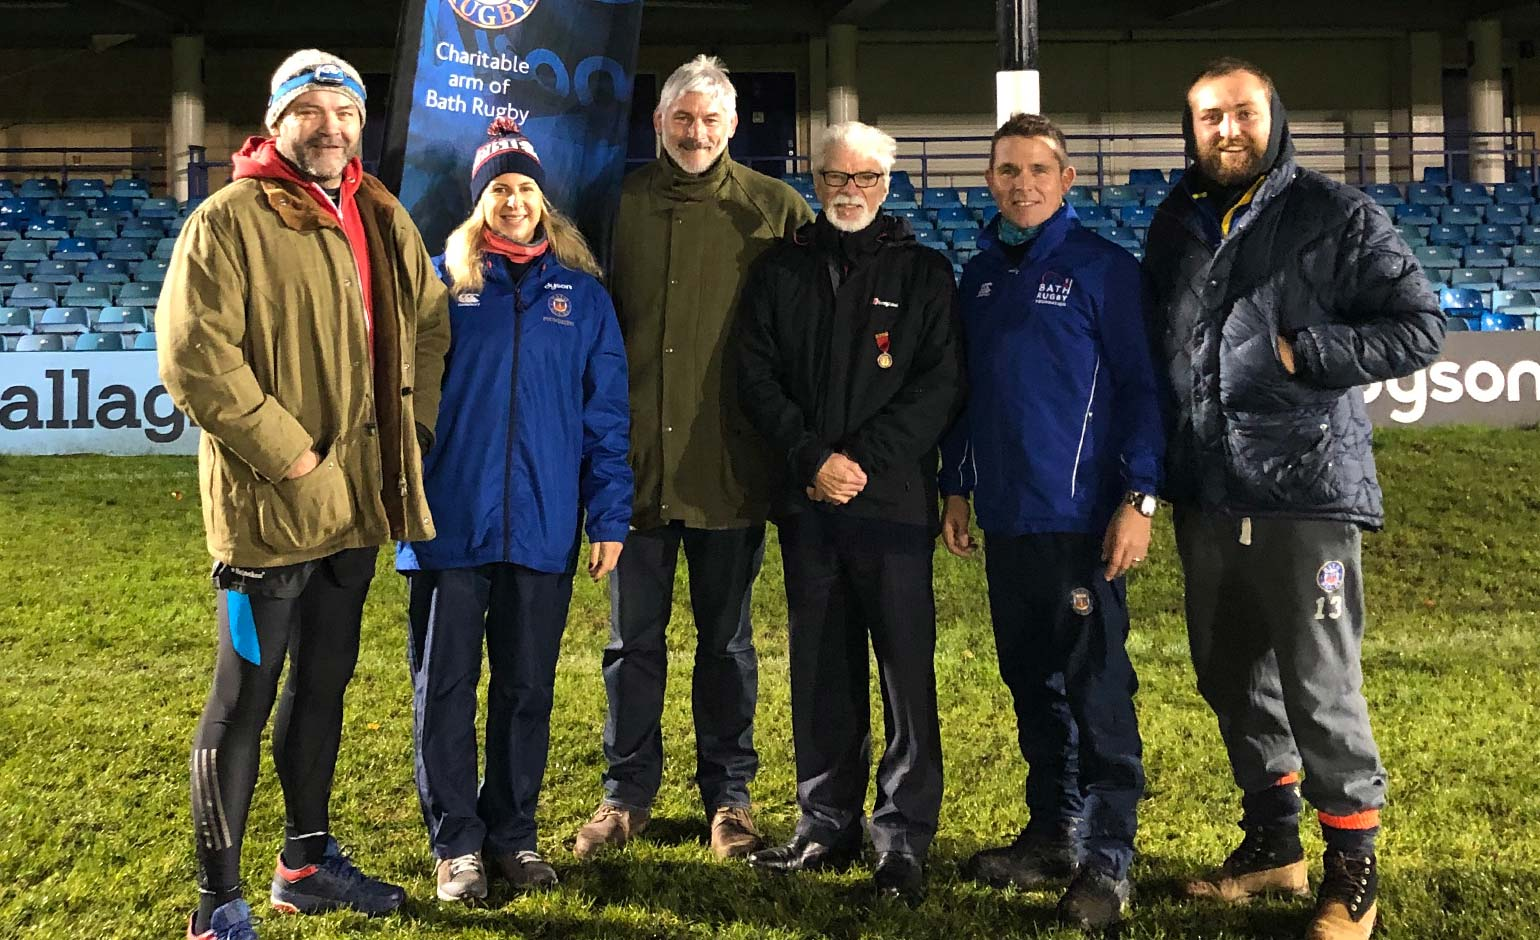 Rec Sleep Out event set to raise vital funds for the Bath Rugby Foundation | Bath Echo